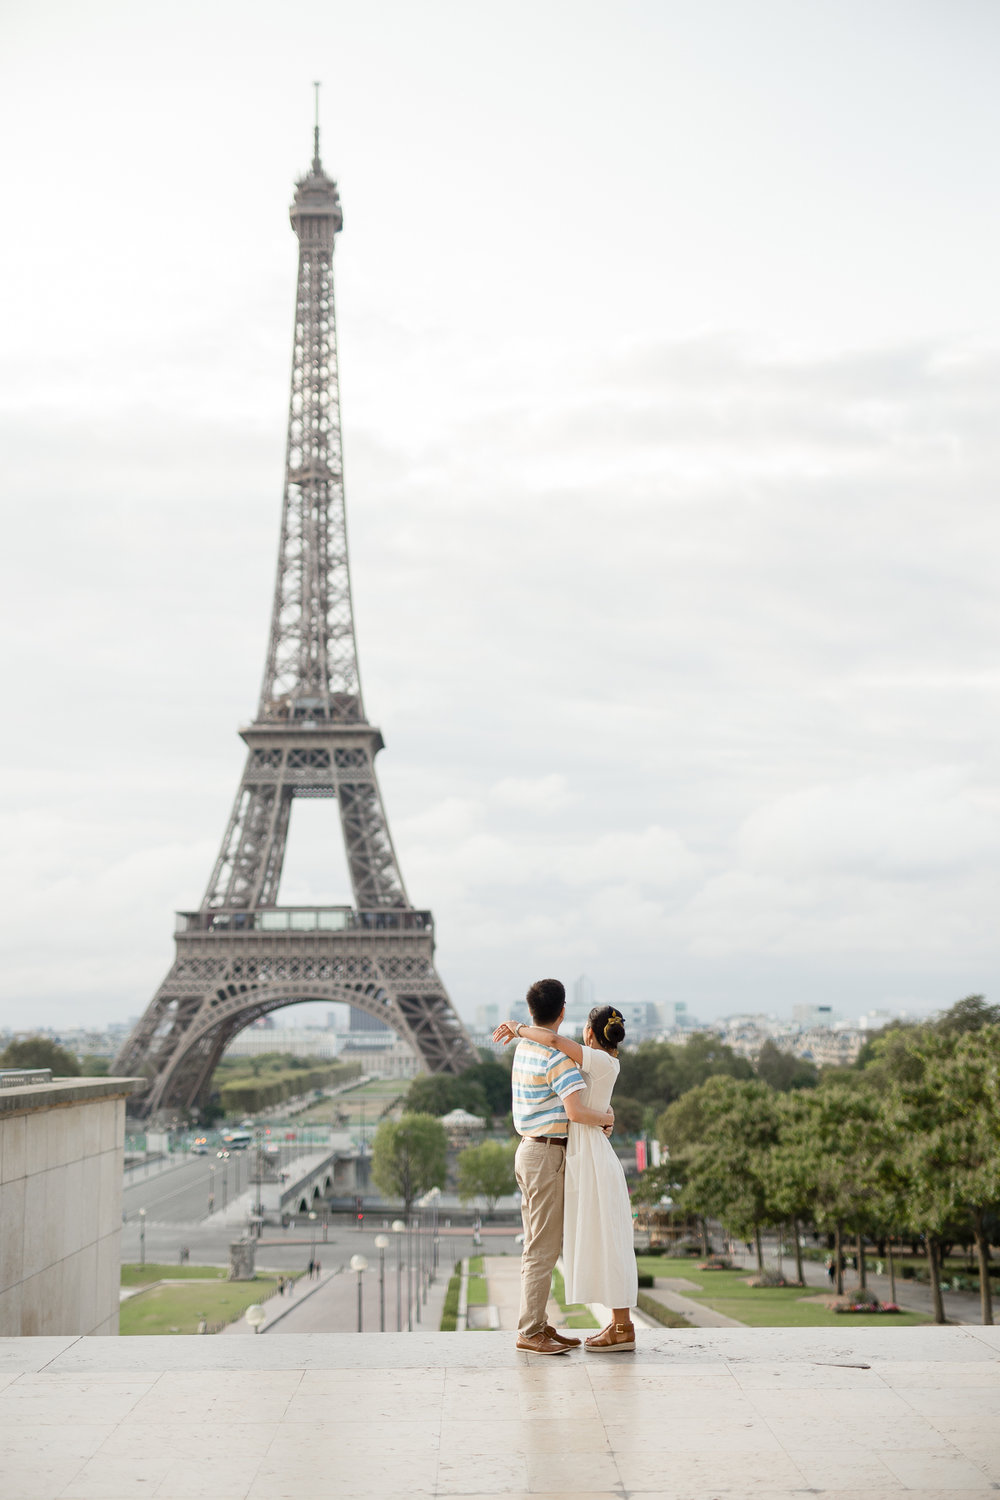 Romantic-Couples-Photo-Session-Eiffel-Tower-Paris-Photographer-Katie-Donnelly_001.jpg